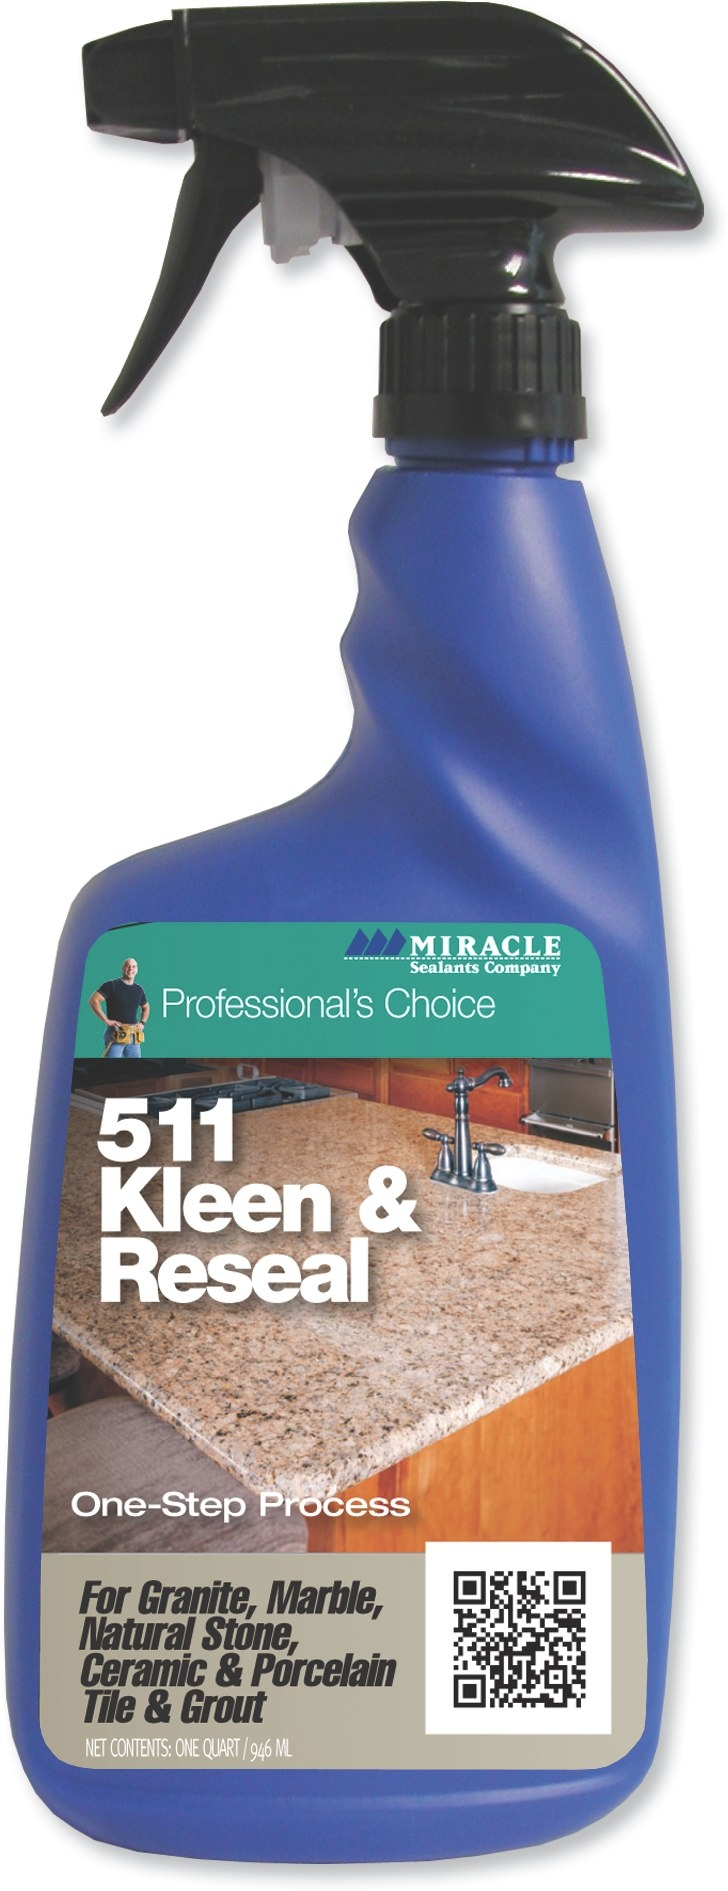 Miracle Sealants KL_RE_32 oz _6/1